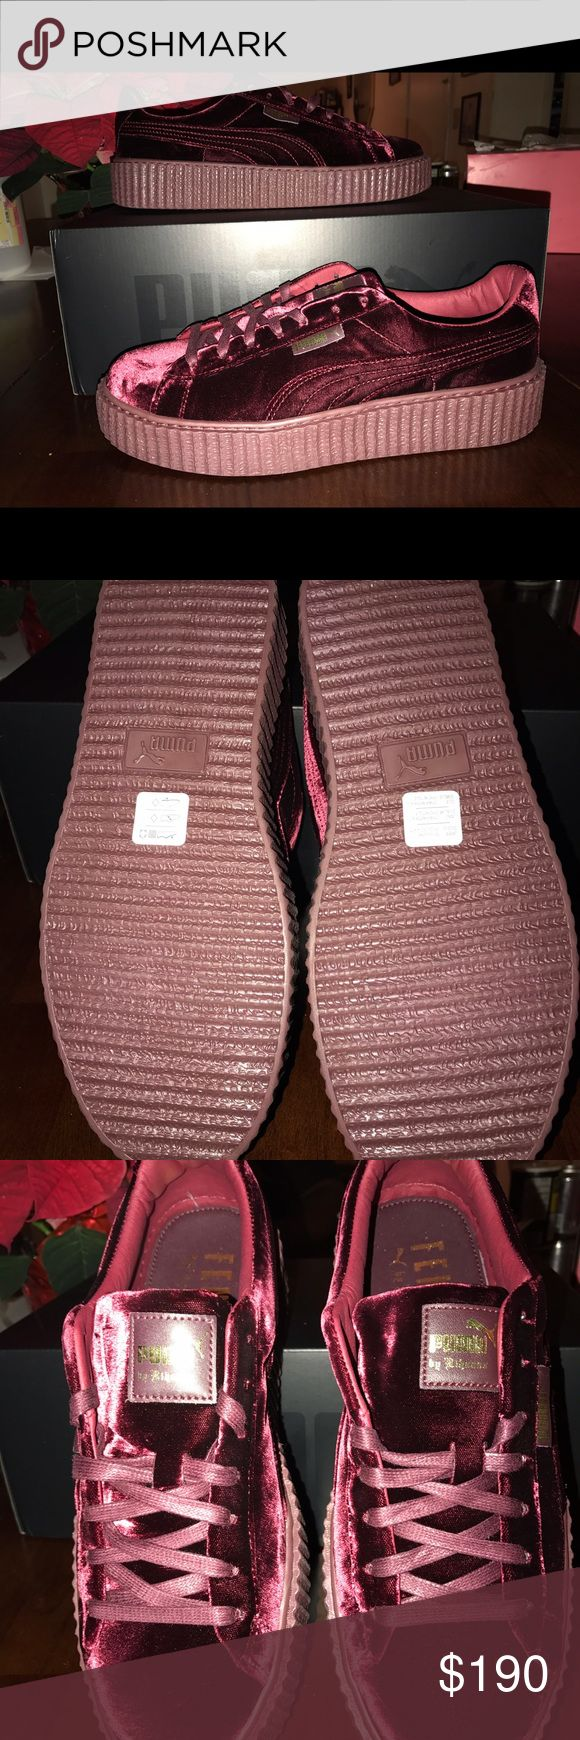 Rihanna Fenty Creepers velvet Burgundy Brand new never worn Puma Rihanna Creepers. Ordered for myself but company sent me the wrong size and the shoes are sold out :( Puma Shoes Sneakers